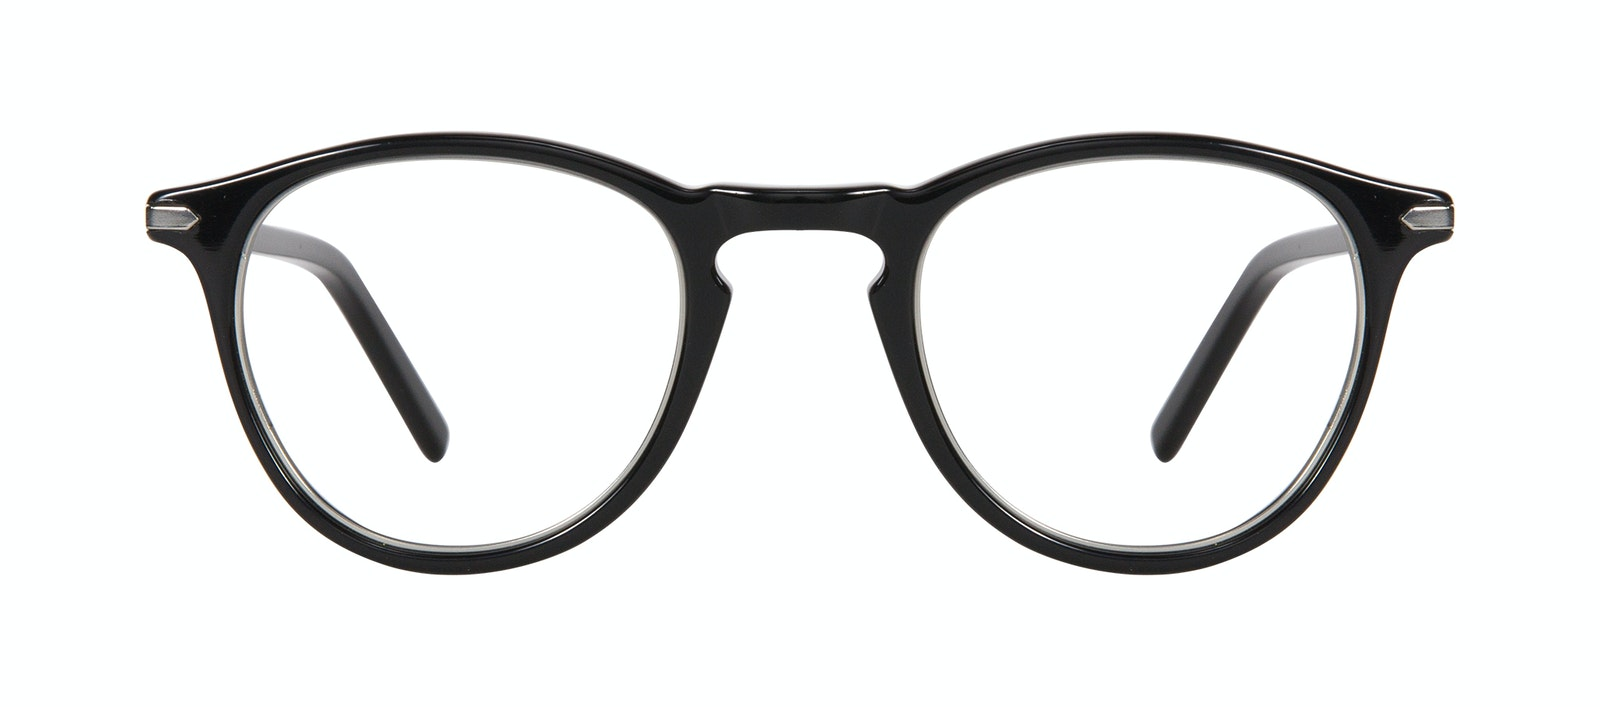 Affordable Fashion Glasses Round Eyeglasses Men Looks Onyx Silver Front